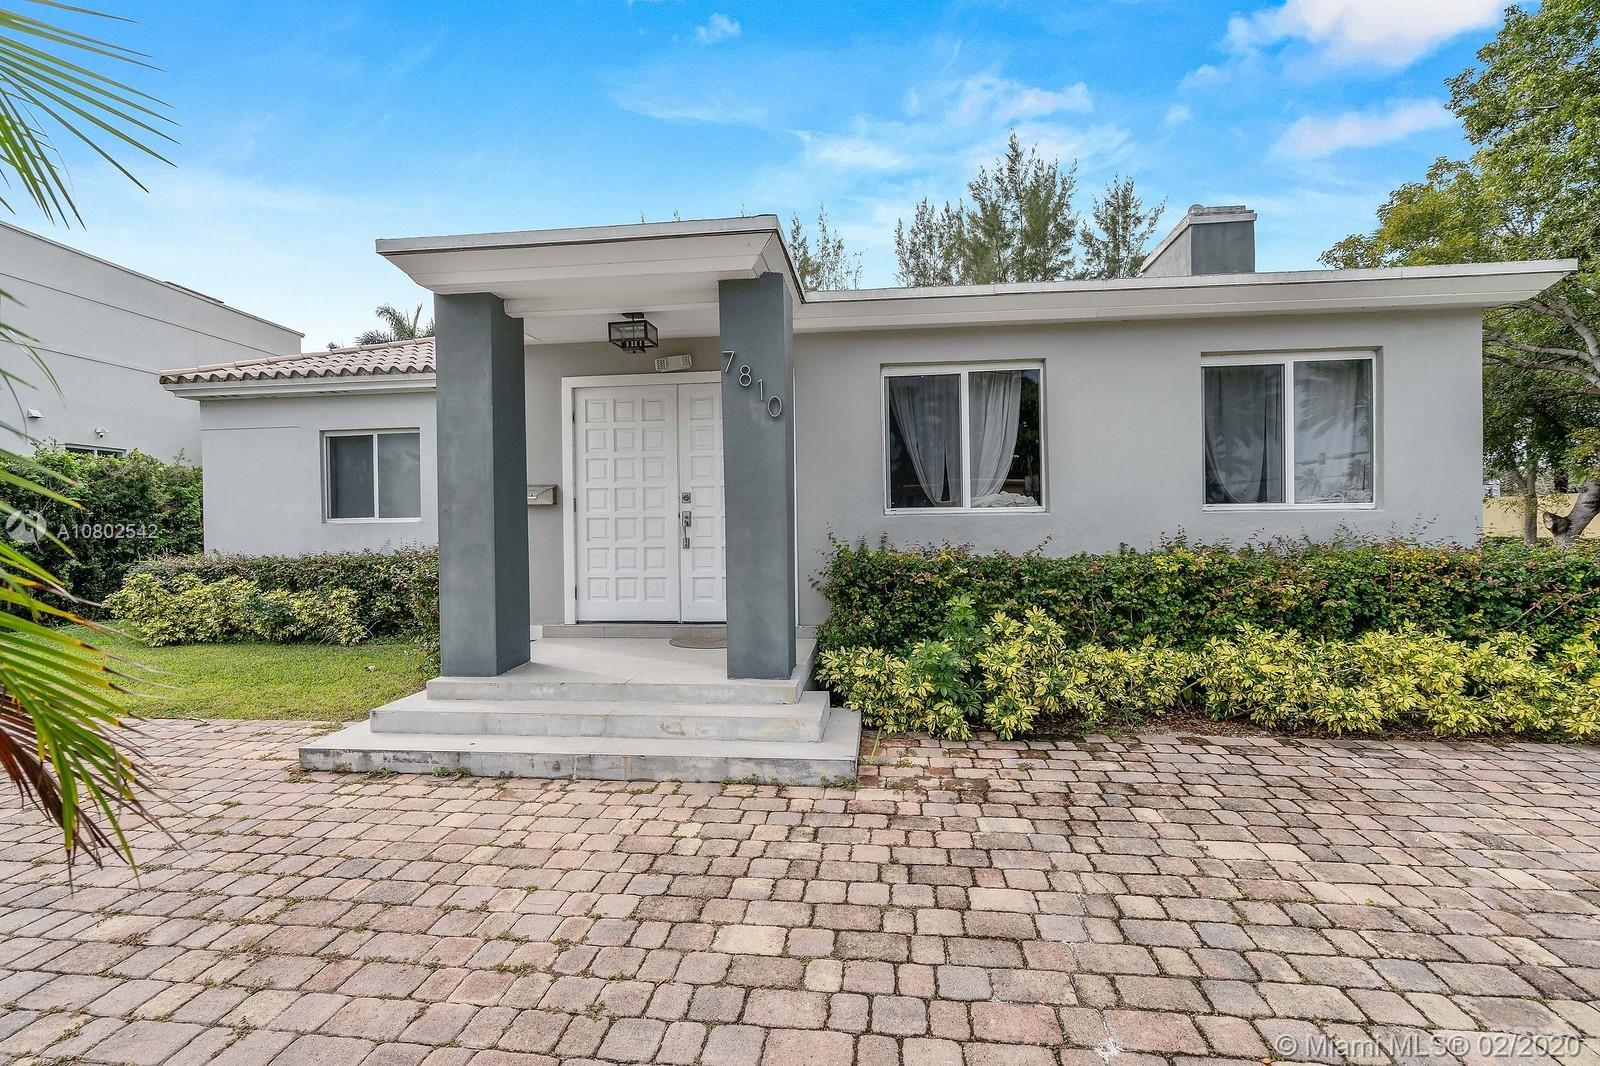 GREAT OPPORTUNITY TO LIVE IN THIS AMAZING NEIGHBORHOOD LOCATED IN A SECURE GATED COMMUNITY IN NORTH